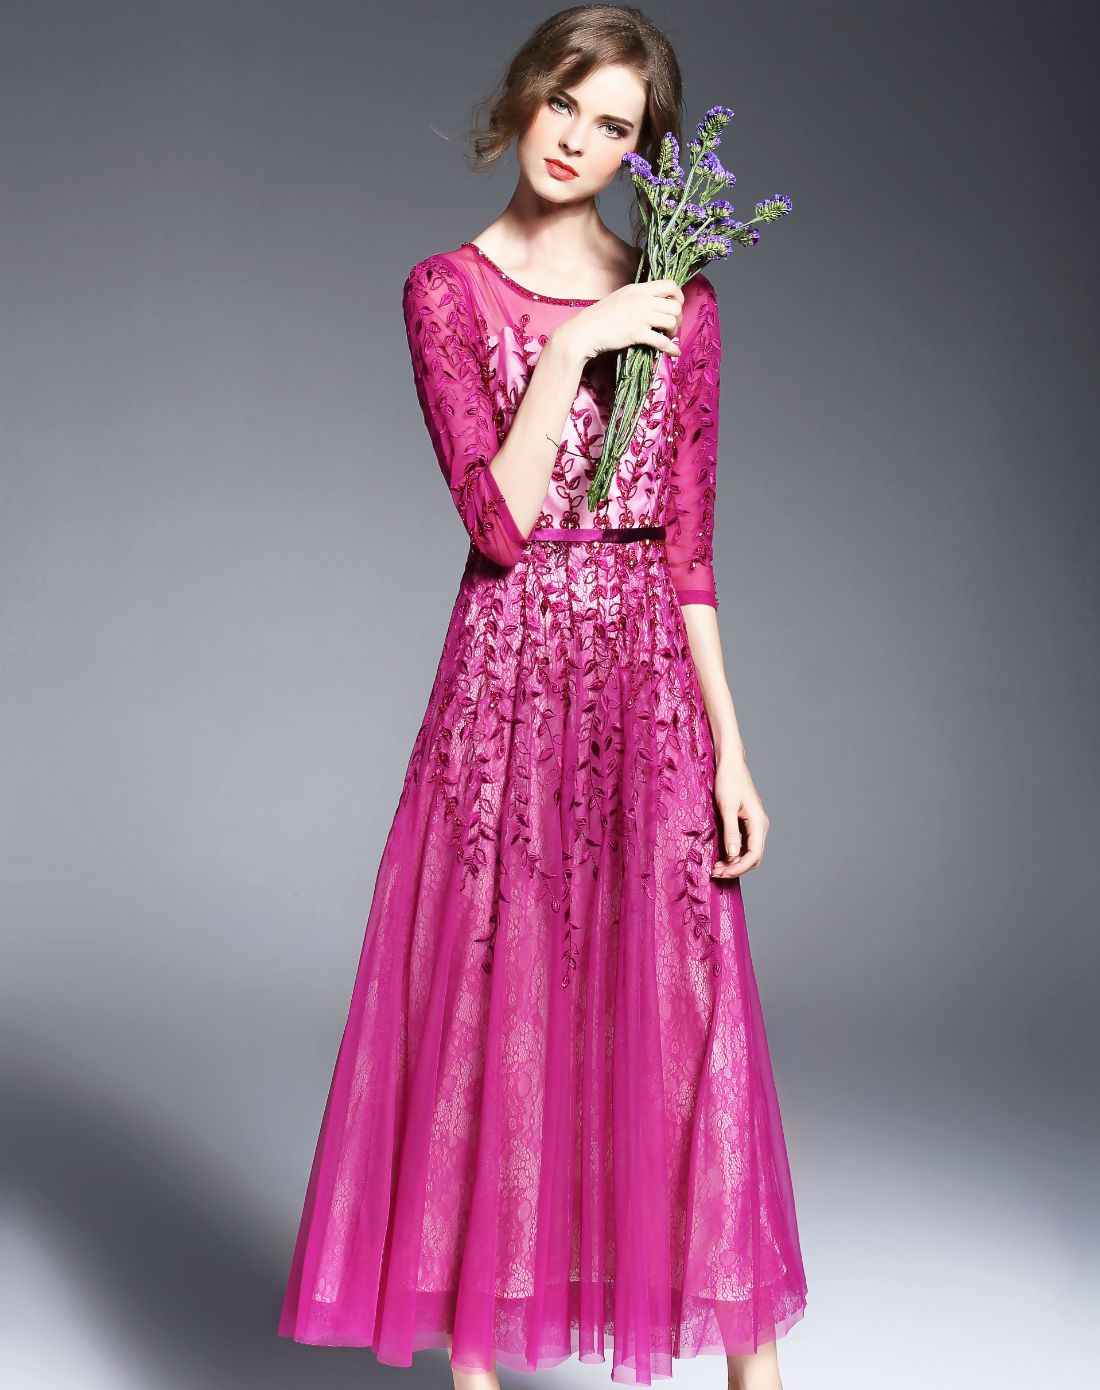 Purple embroidered illusion sleeve beaded floral swing maxi dress